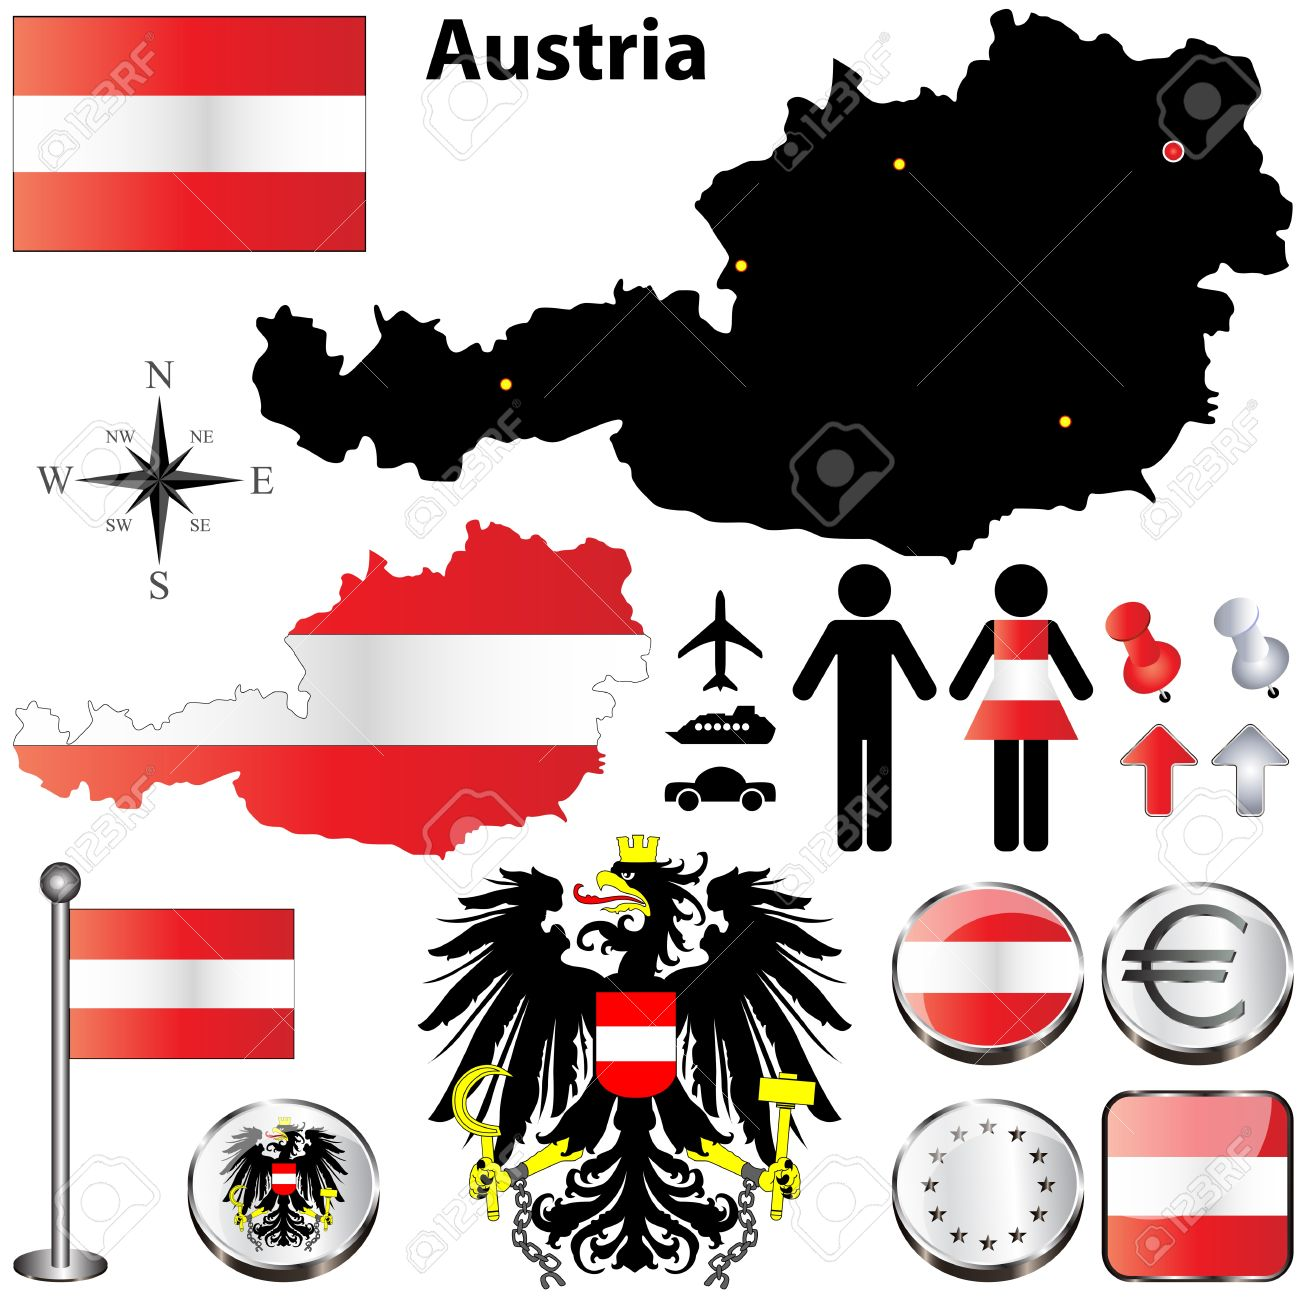 Austria clipart #8, Download drawings